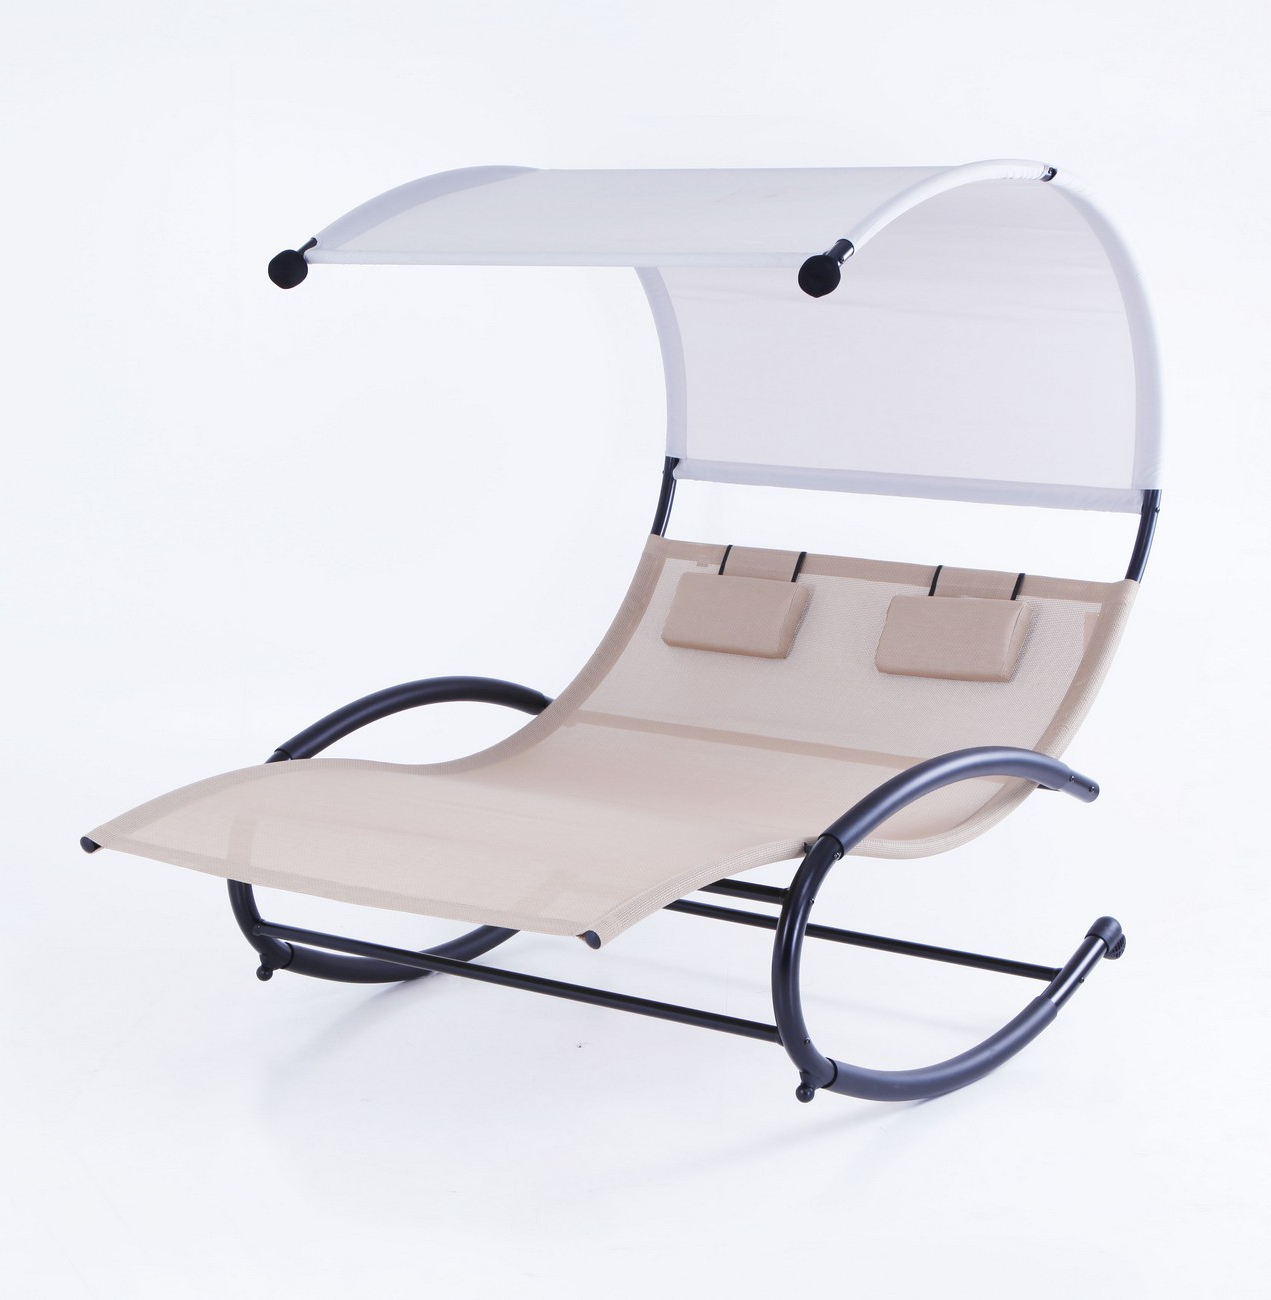 2 Person Lounge Swing Chair W Canopy Sun Shade Rocking Eames Inside Newest Double Reclining Lounge Chairs With Canopy (View 10 of 25)